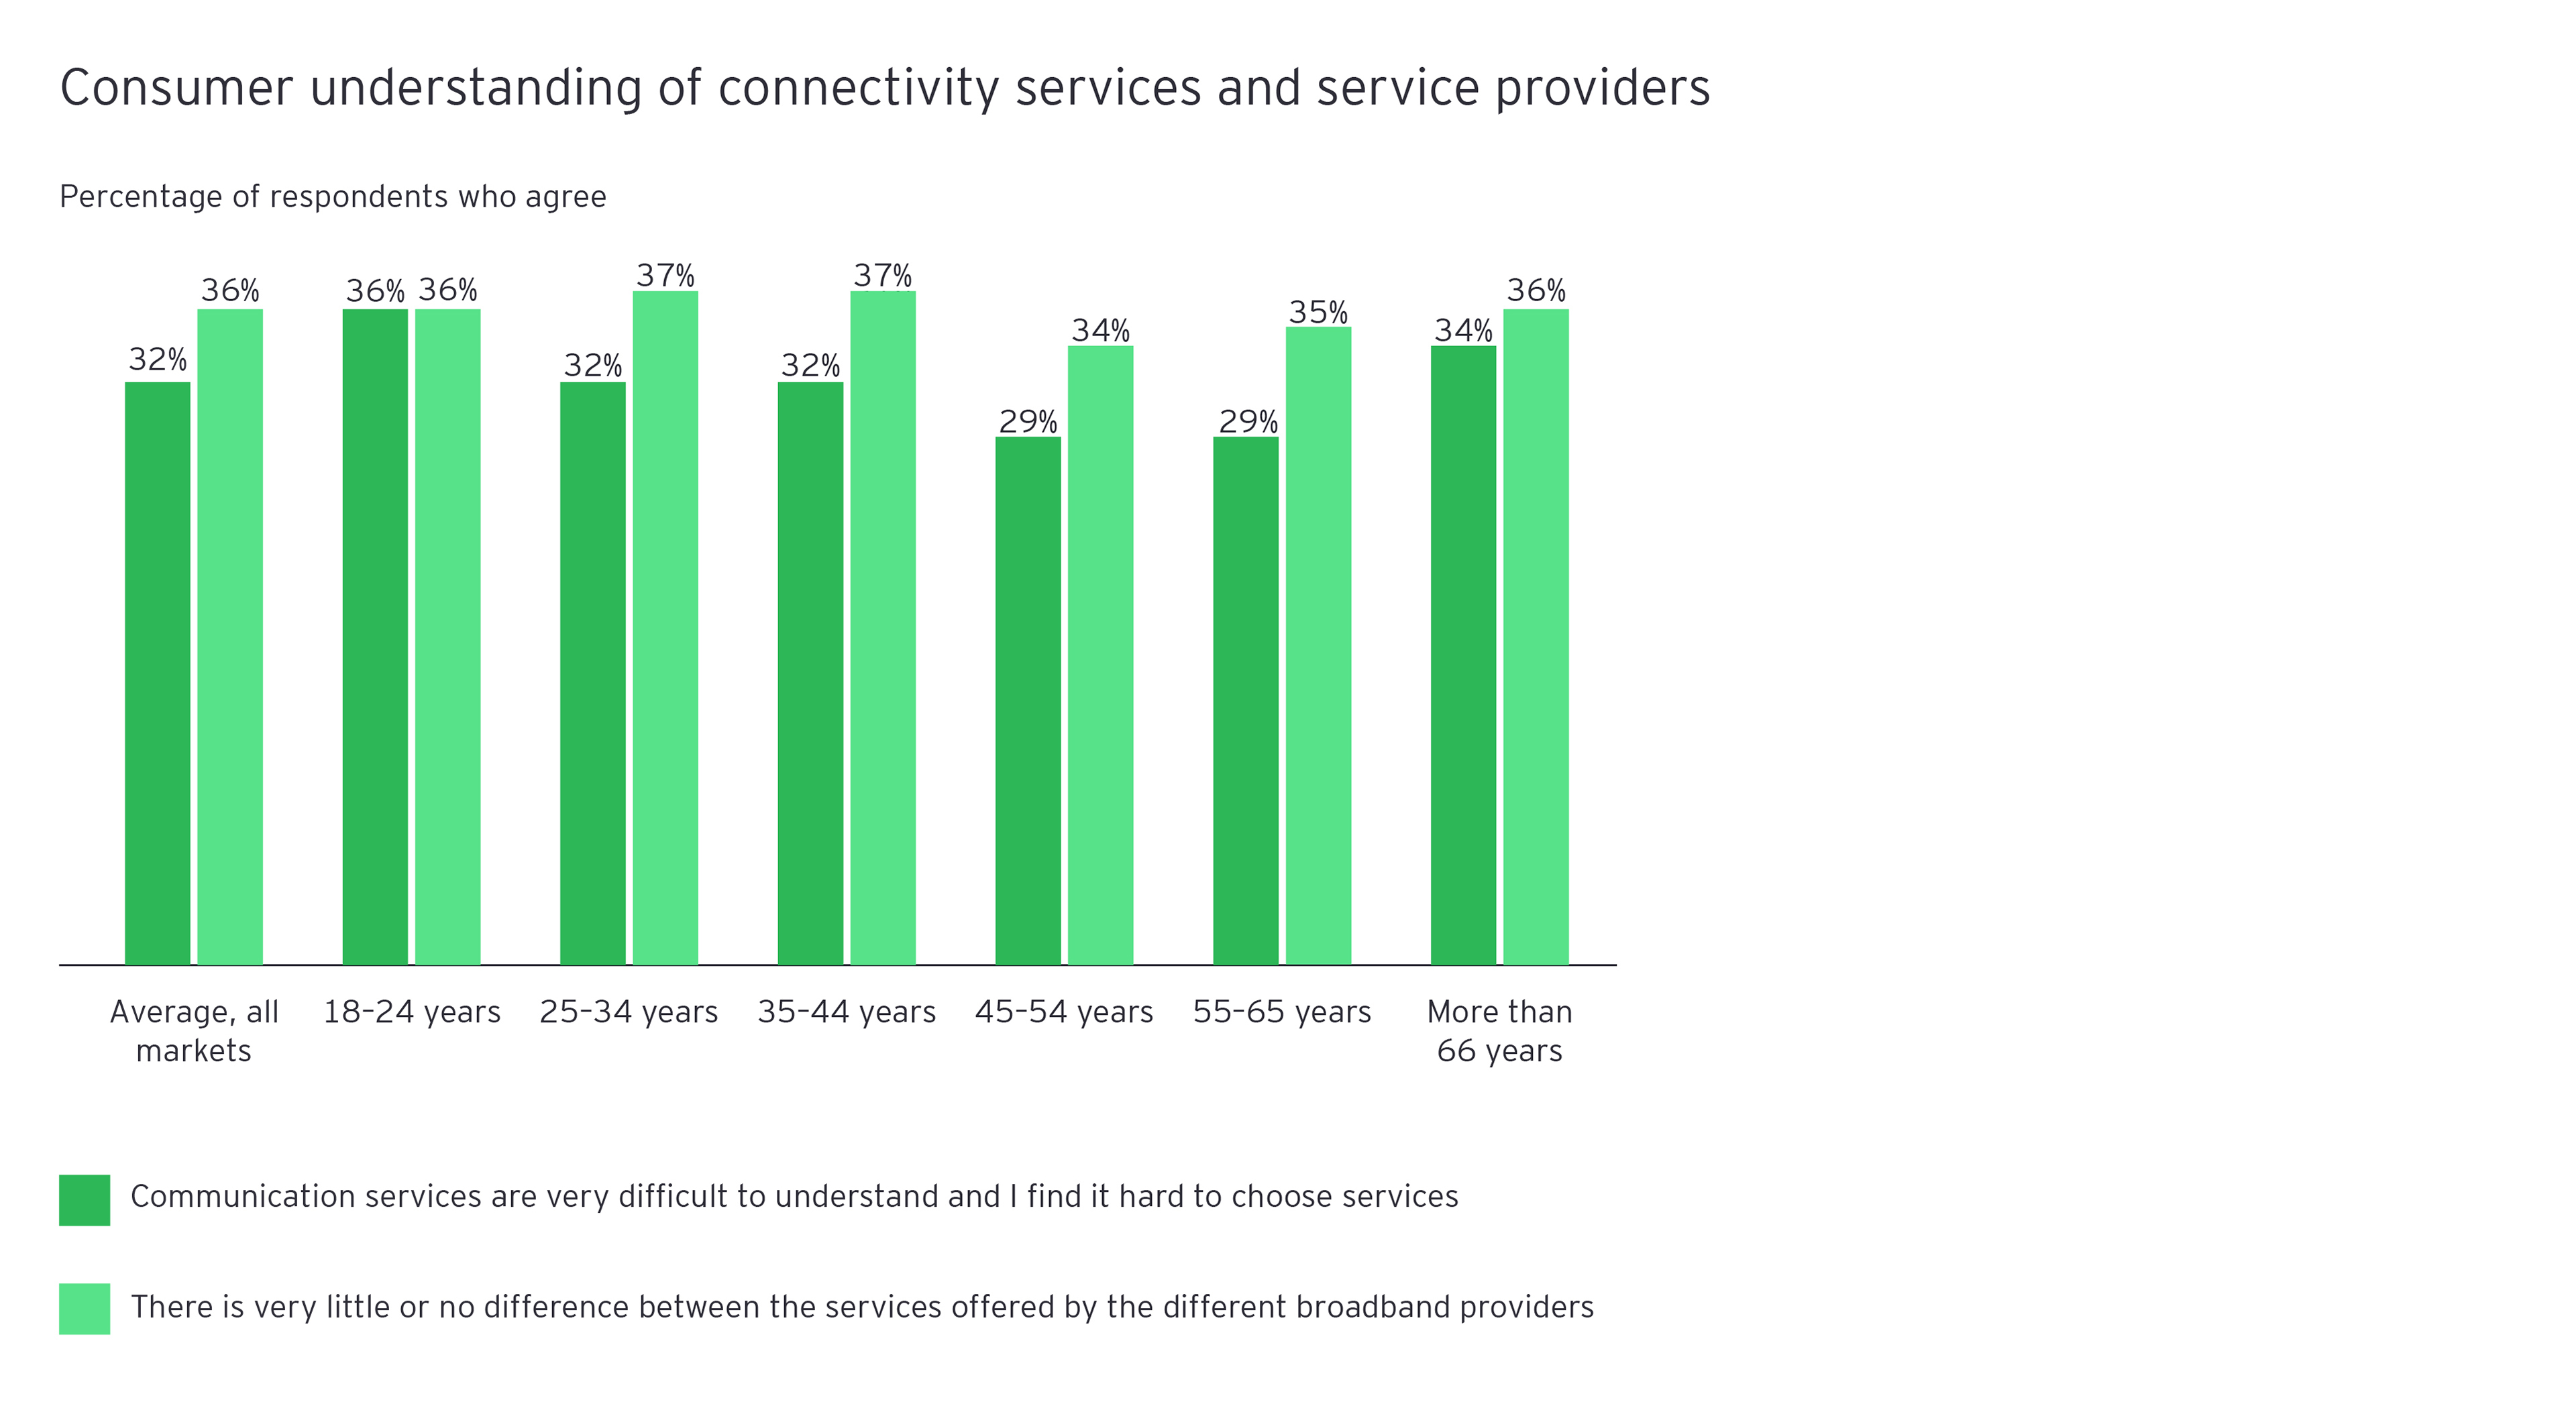 Figure 2: Consumer understanding of connectivity services and service providers